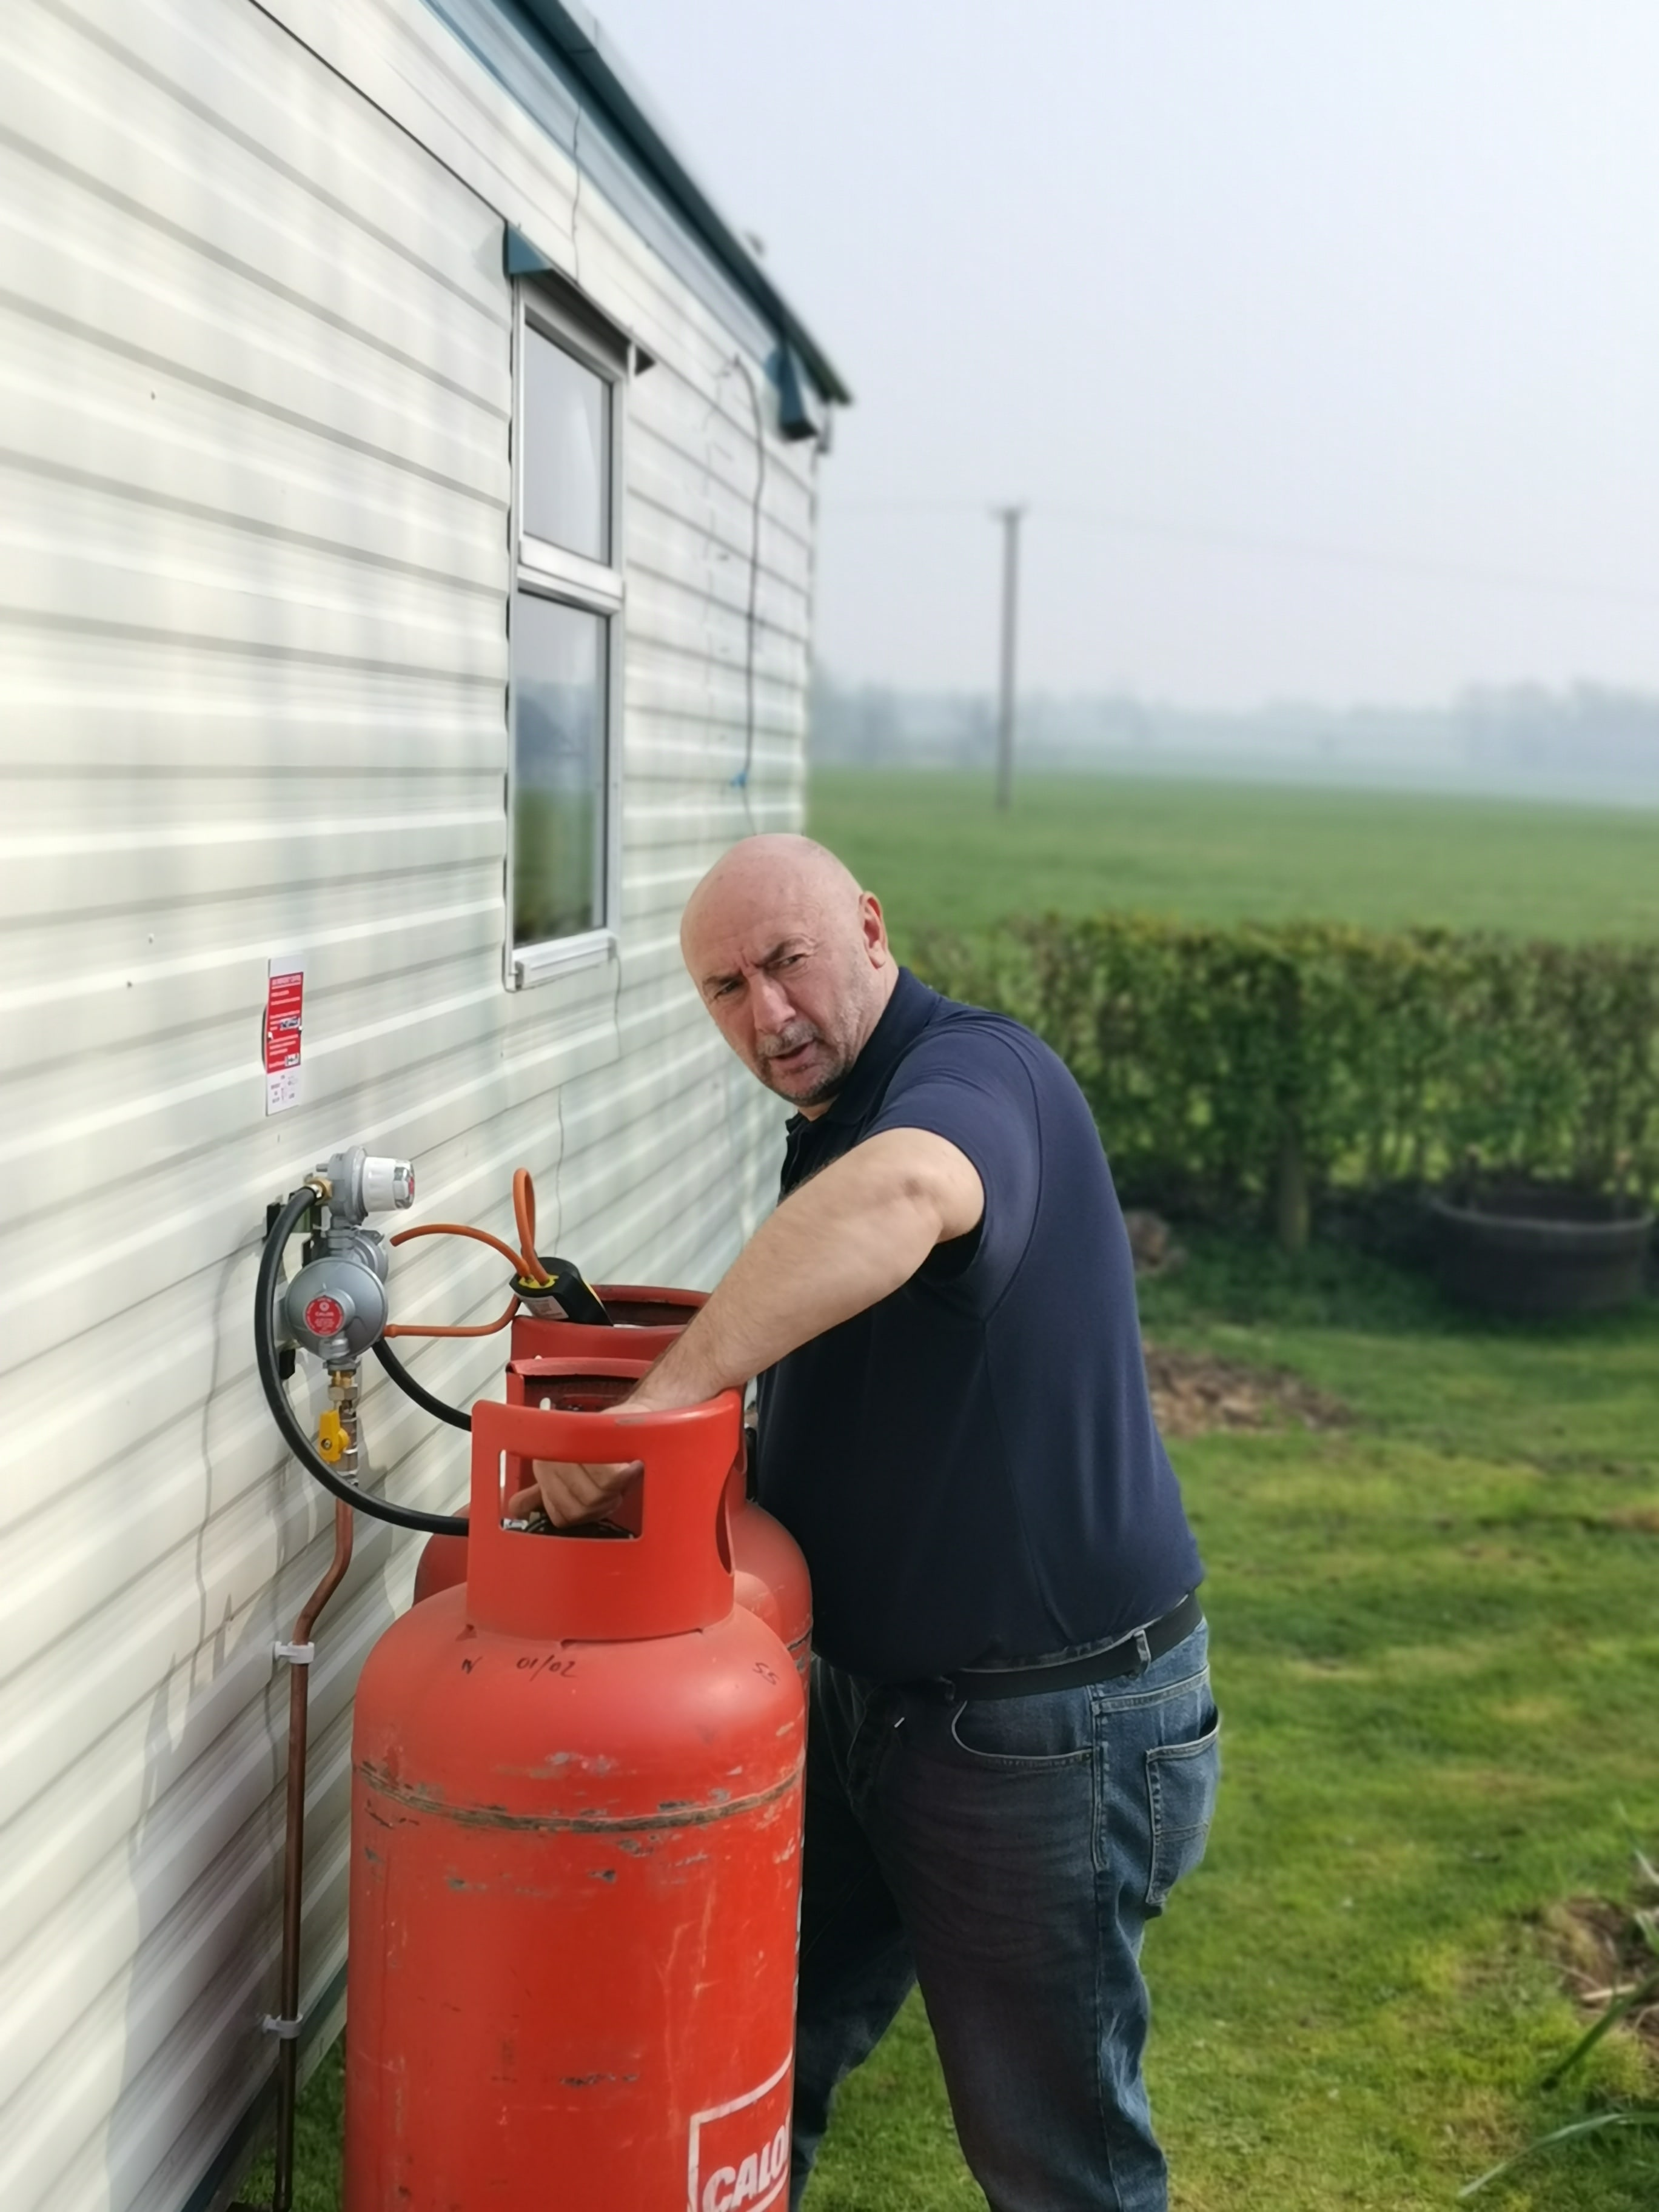 LPG and Bottled Gas